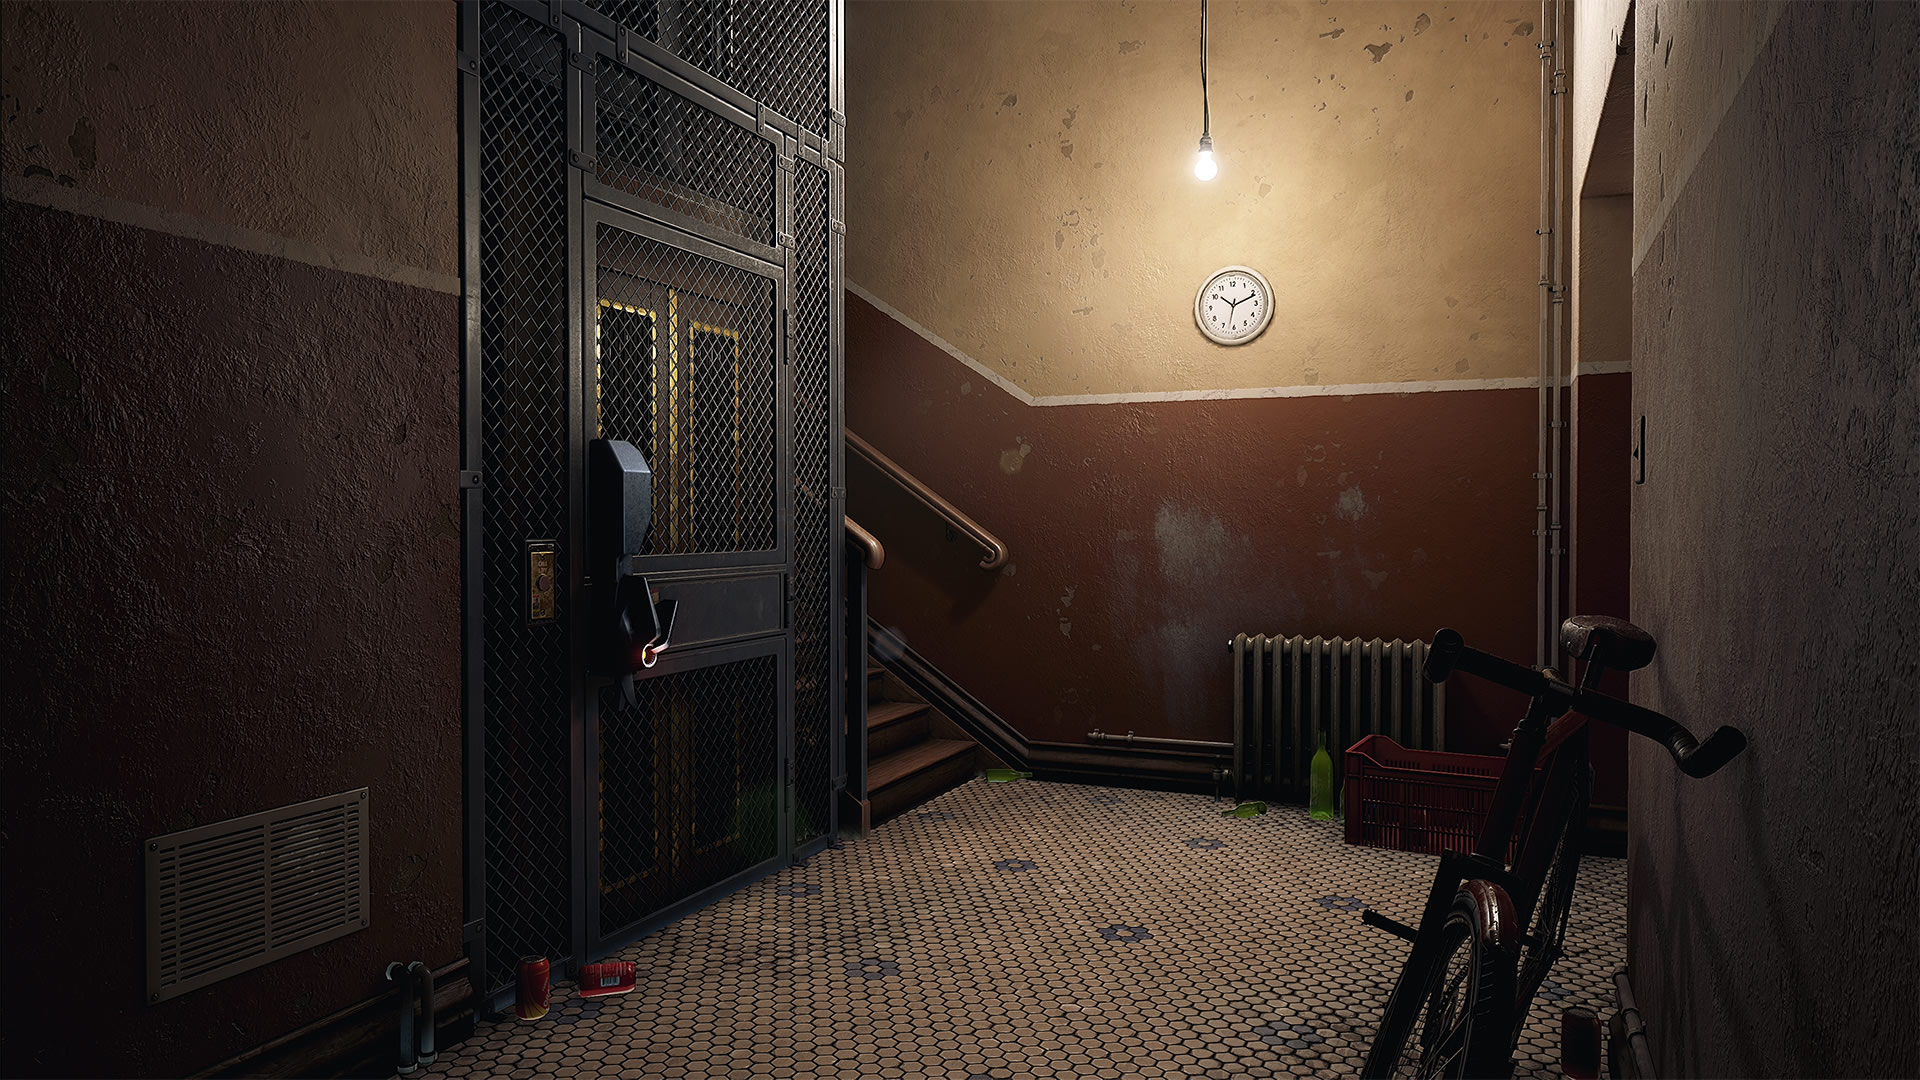 Half-Life 2 Environment Recreated in Unreal Engine 4 Looks Incredible